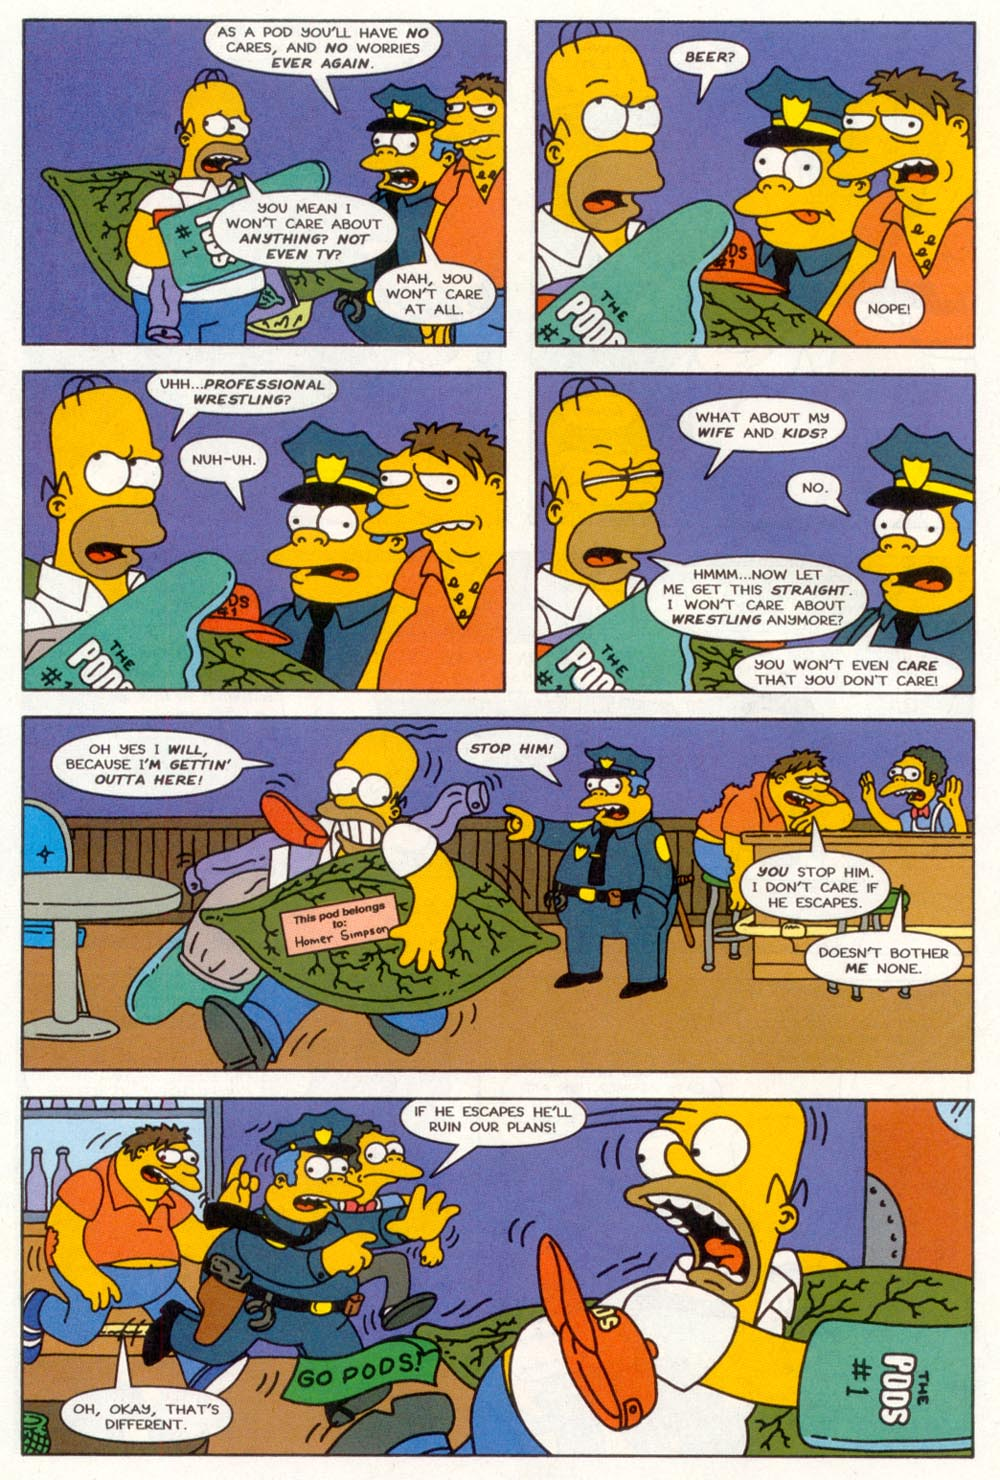 Read online Treehouse of Horror comic -  Issue #3 - 11